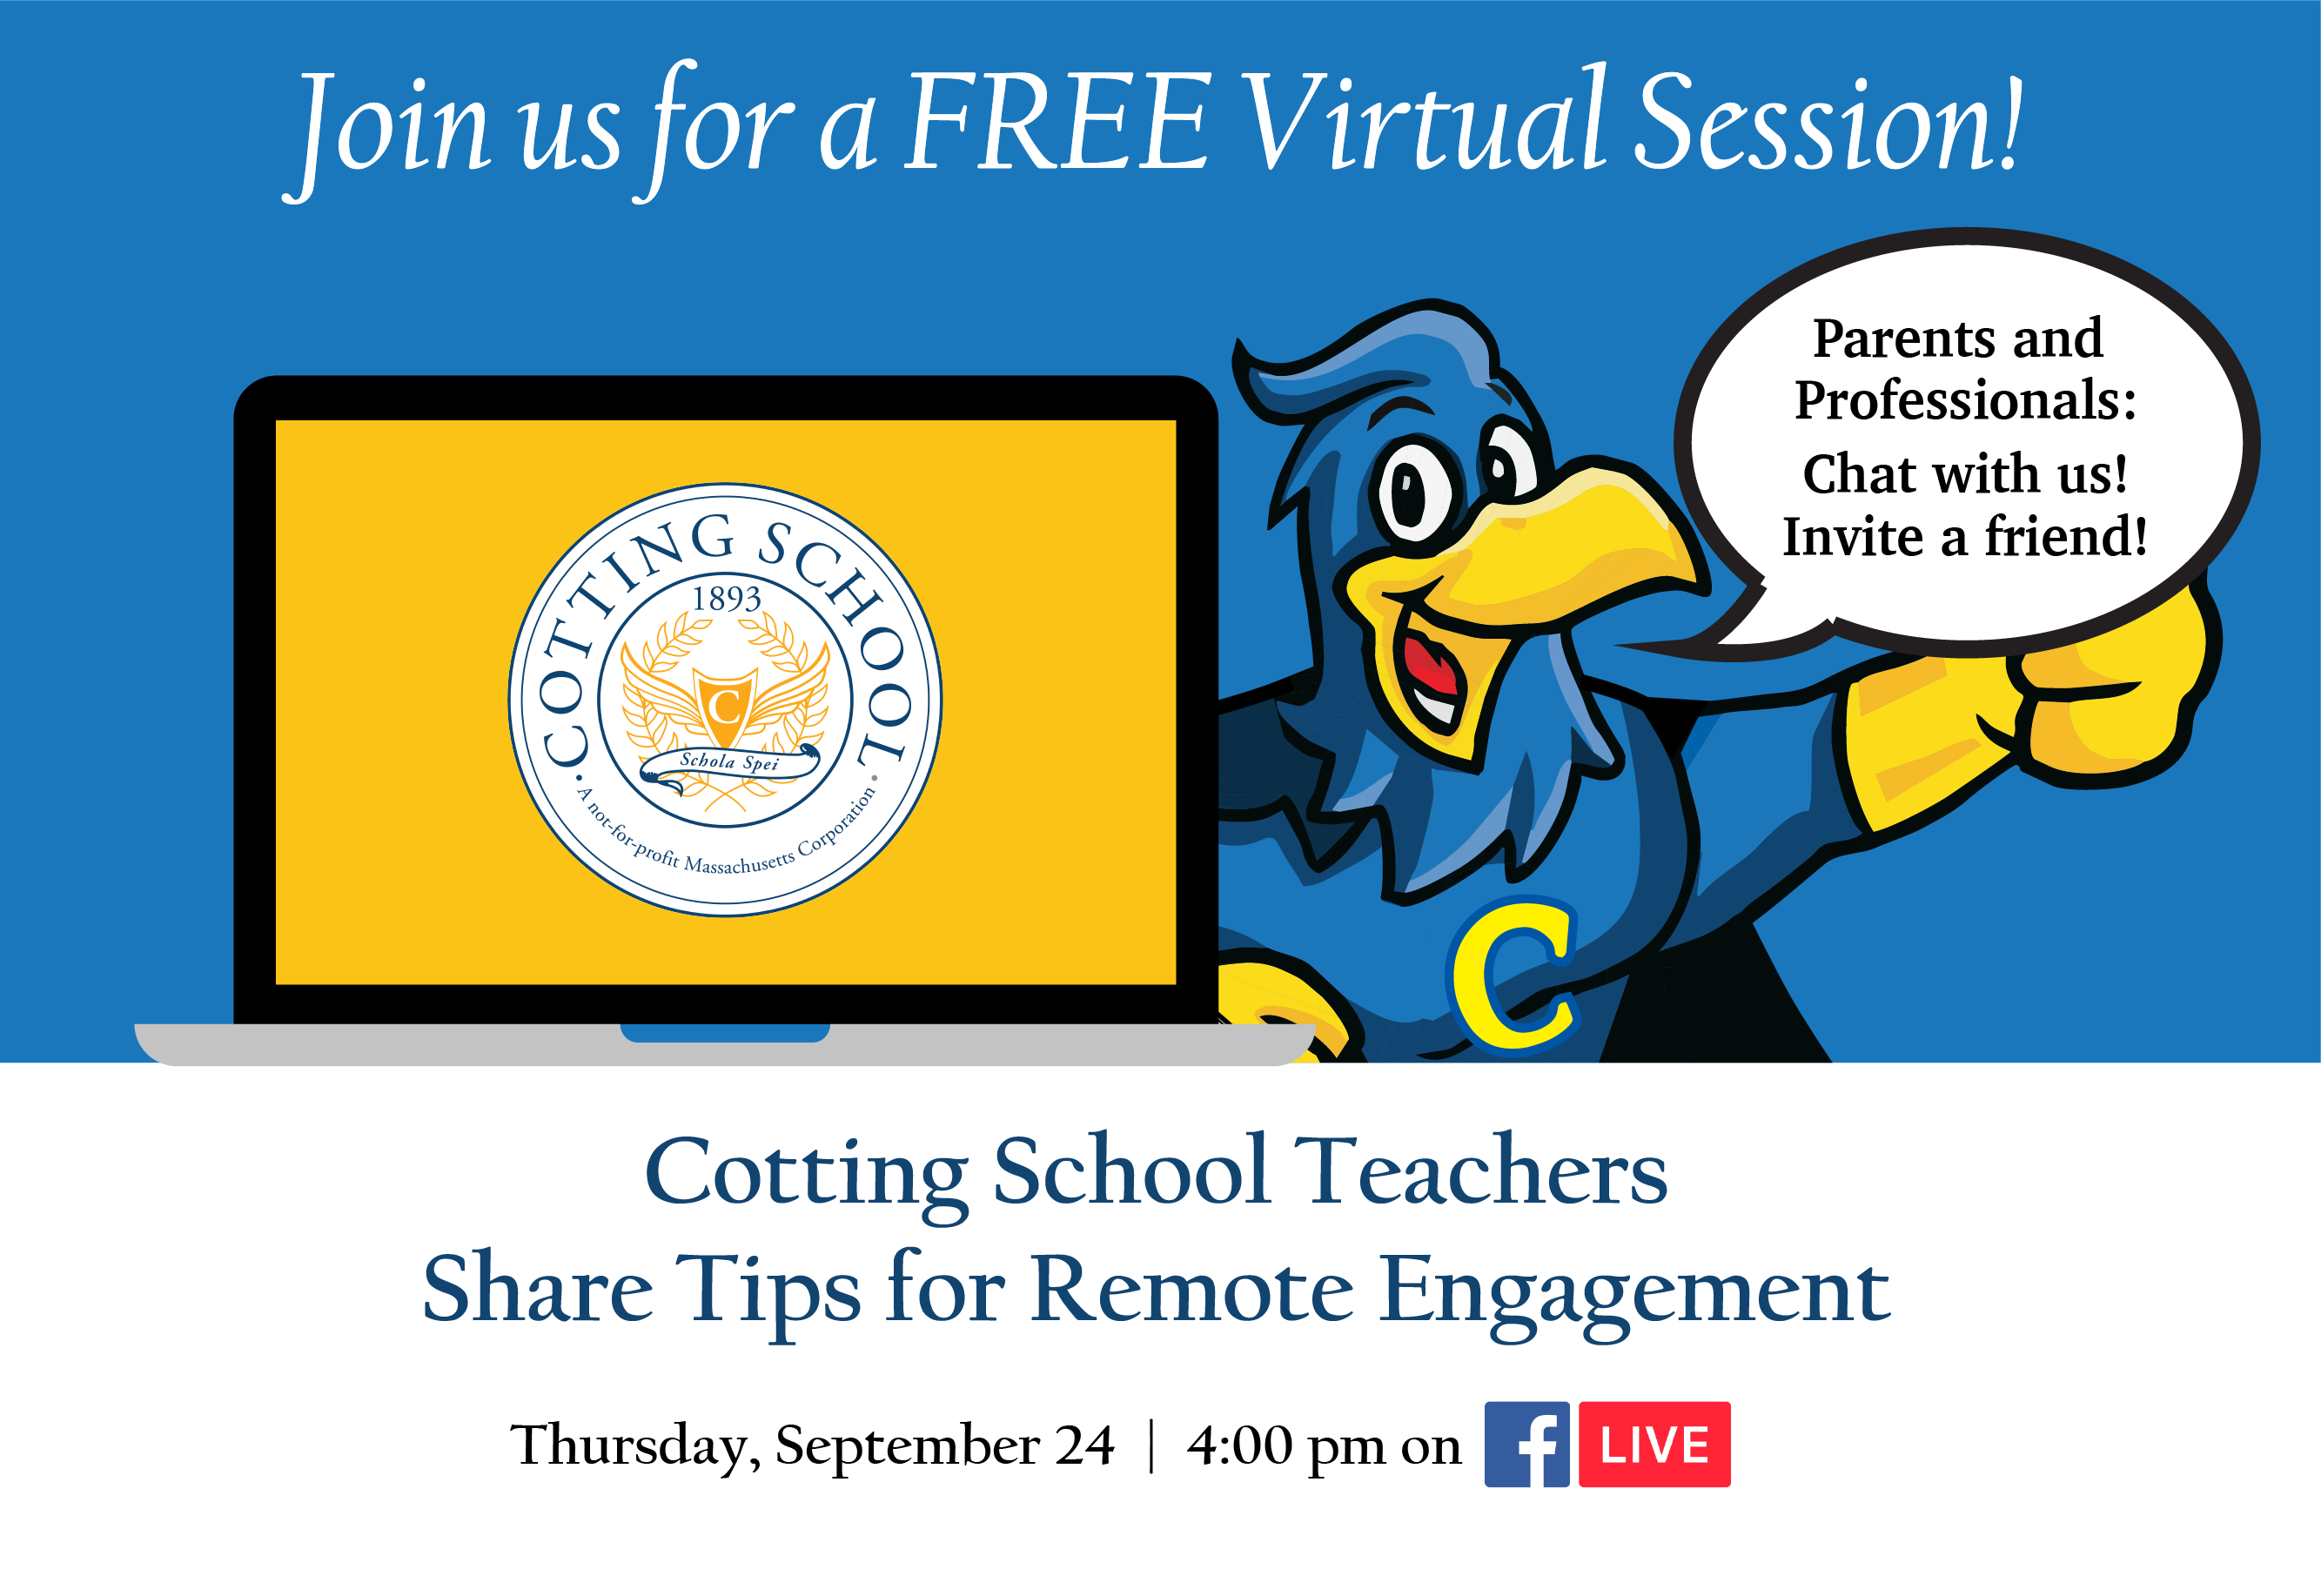 Virtual Session on Remote Engagement